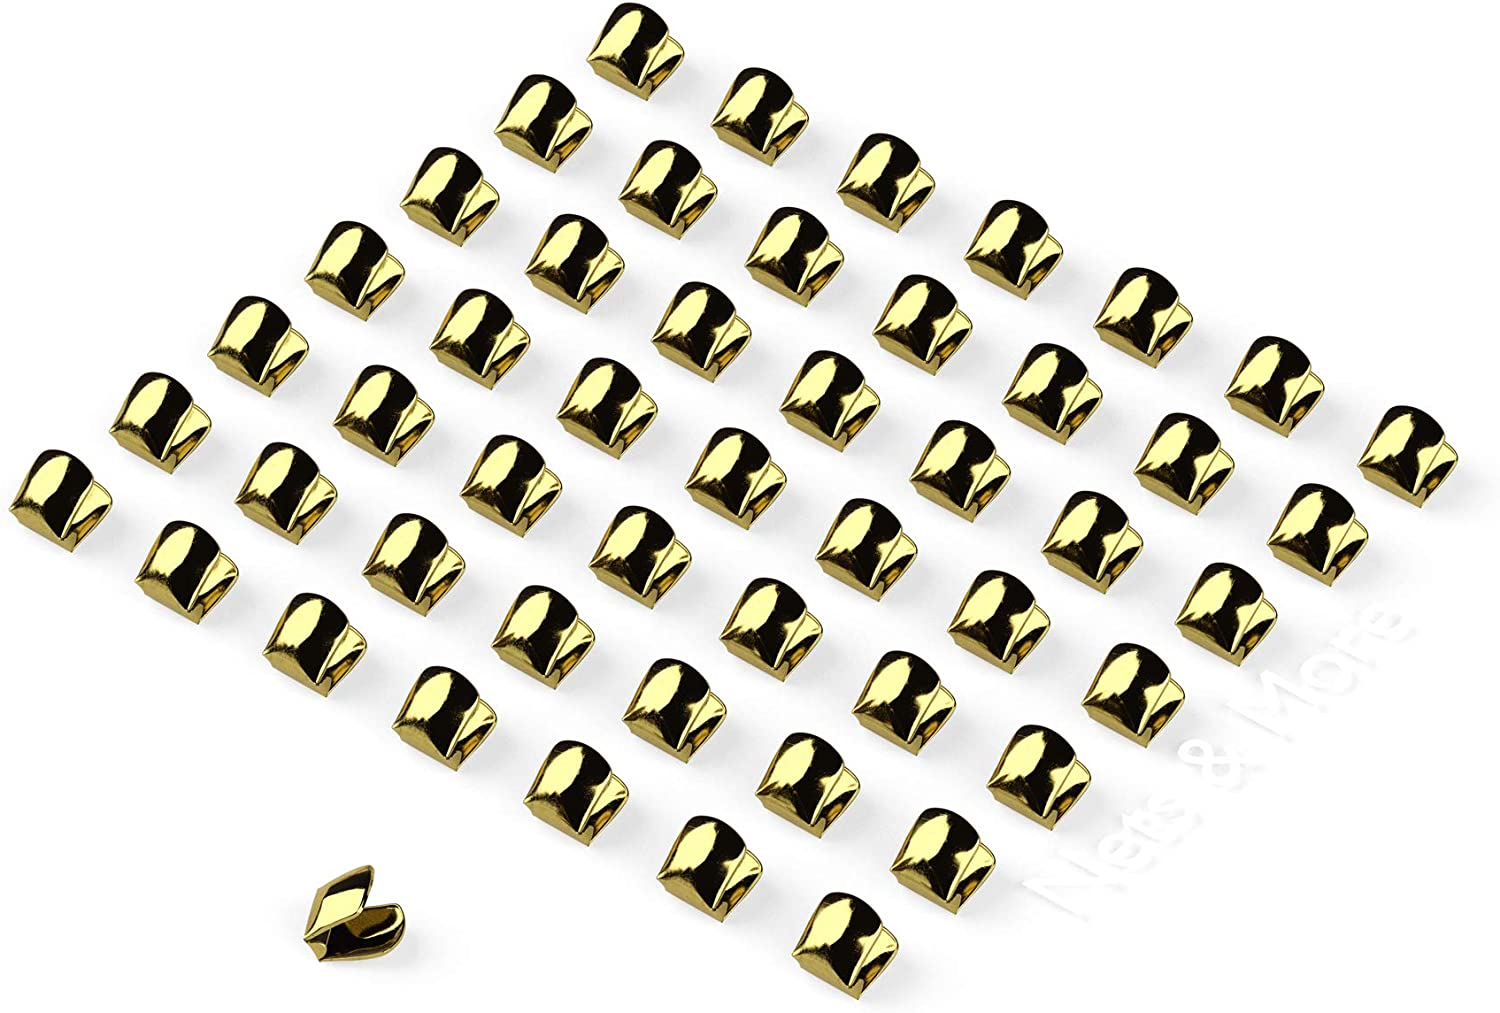 50 pcs Catahoula 03260 Brass Trotline Brads Prevent Staging From Moving